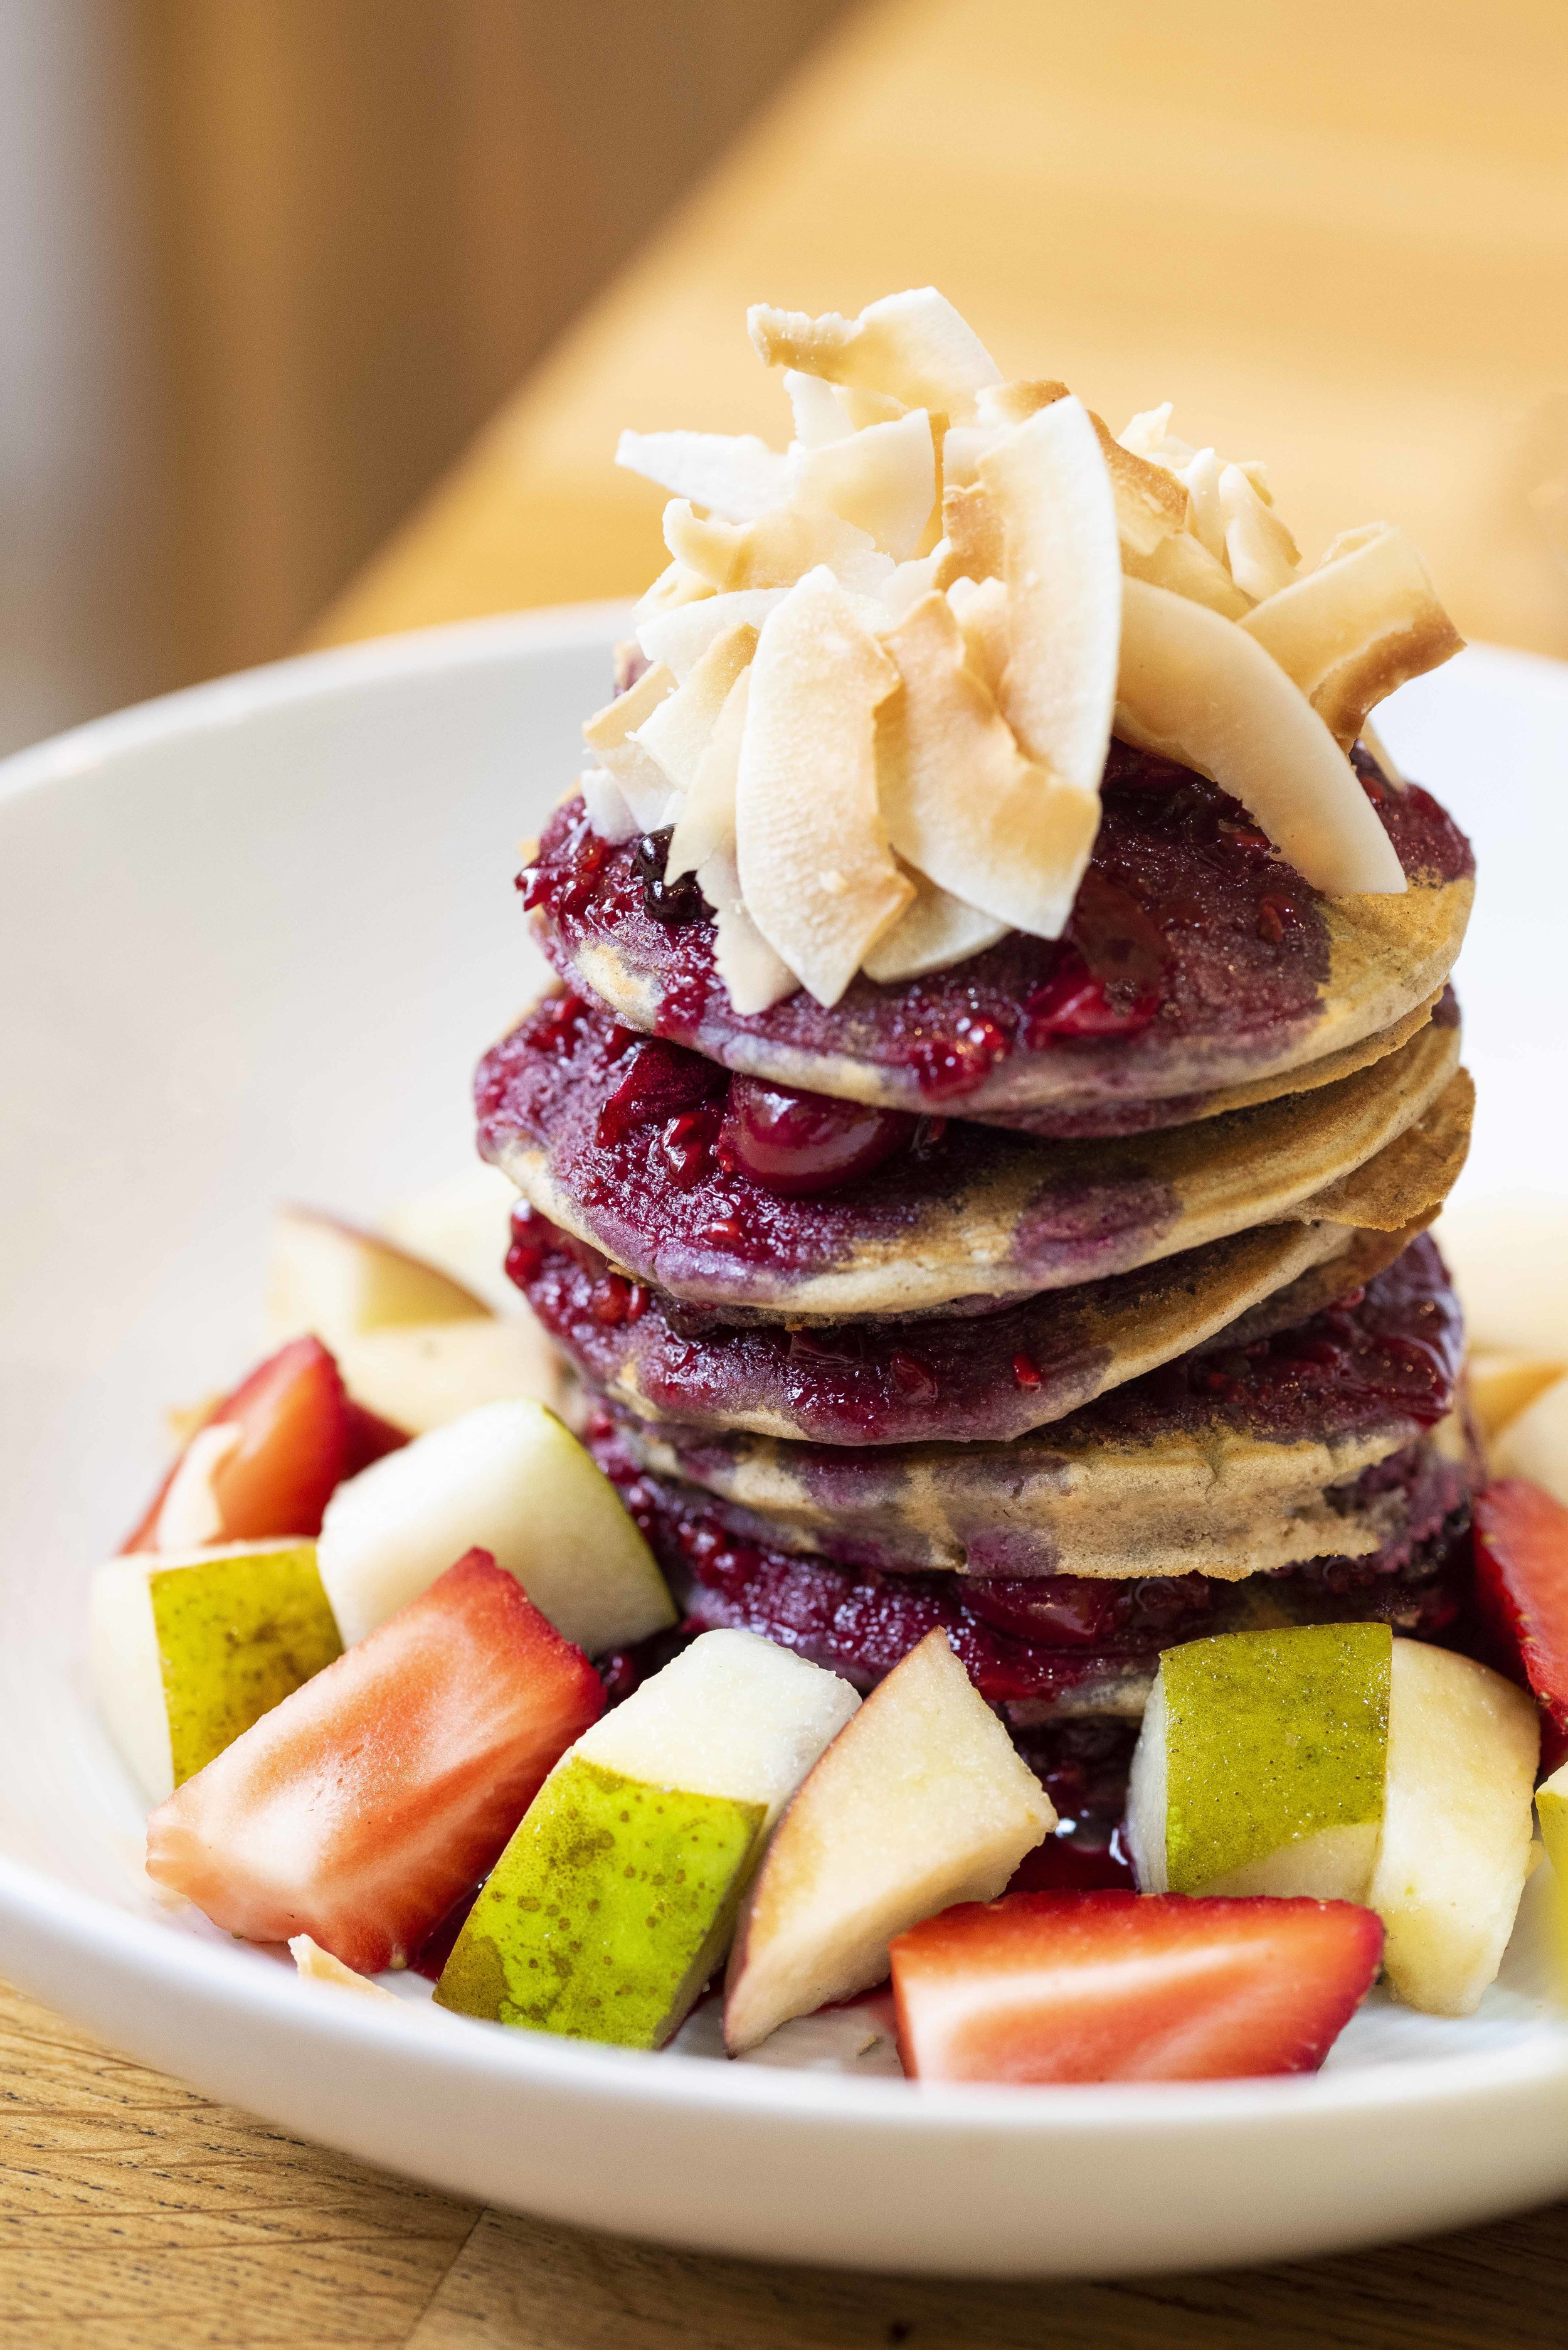 Pancakes with berries and fruit at Equilibrium Cafe, Barcelona. Photo © Barcelona Food Experience.